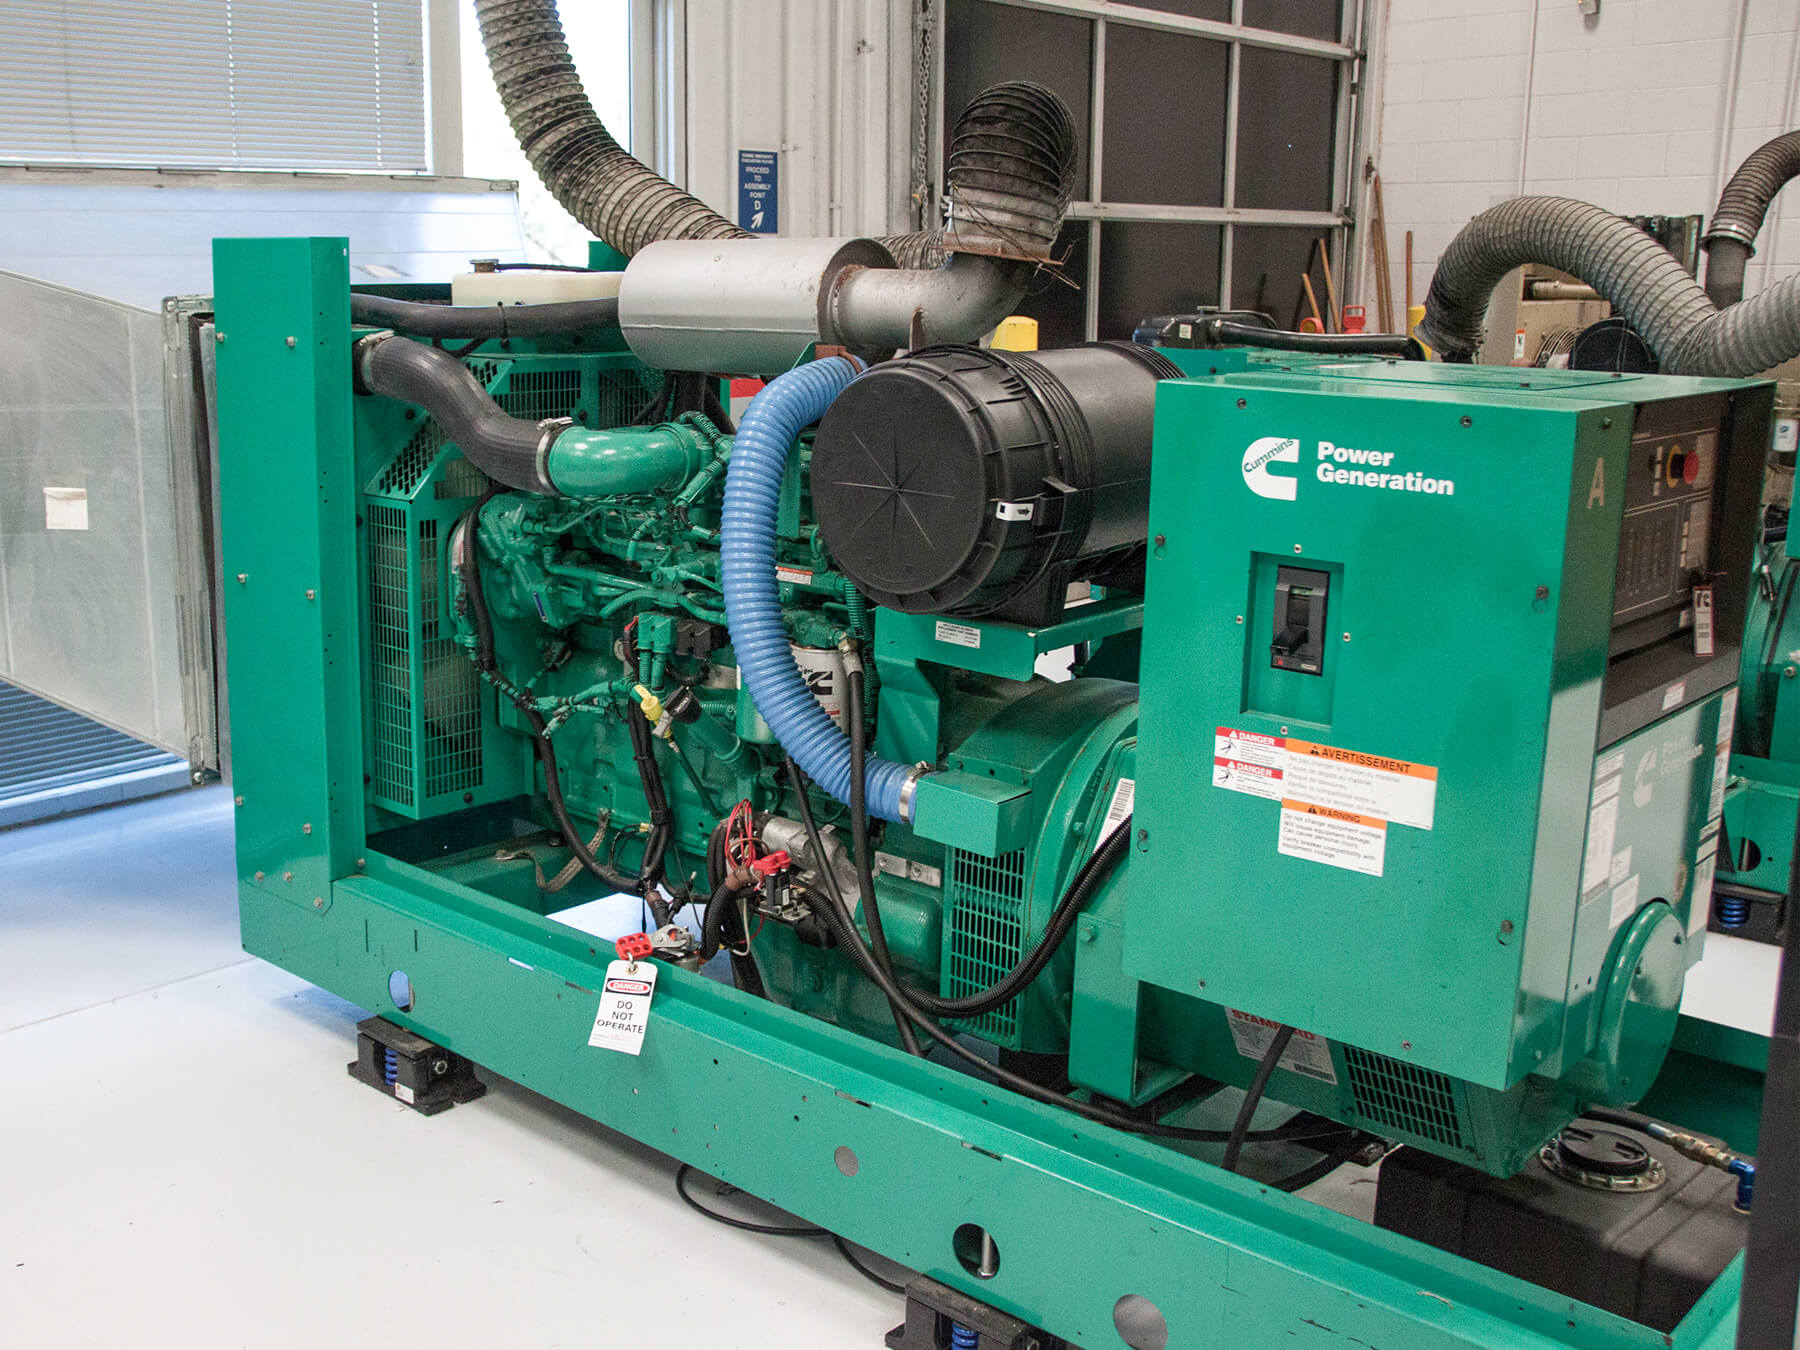 Angled photo of a Green cummins power generator in the cummins lab